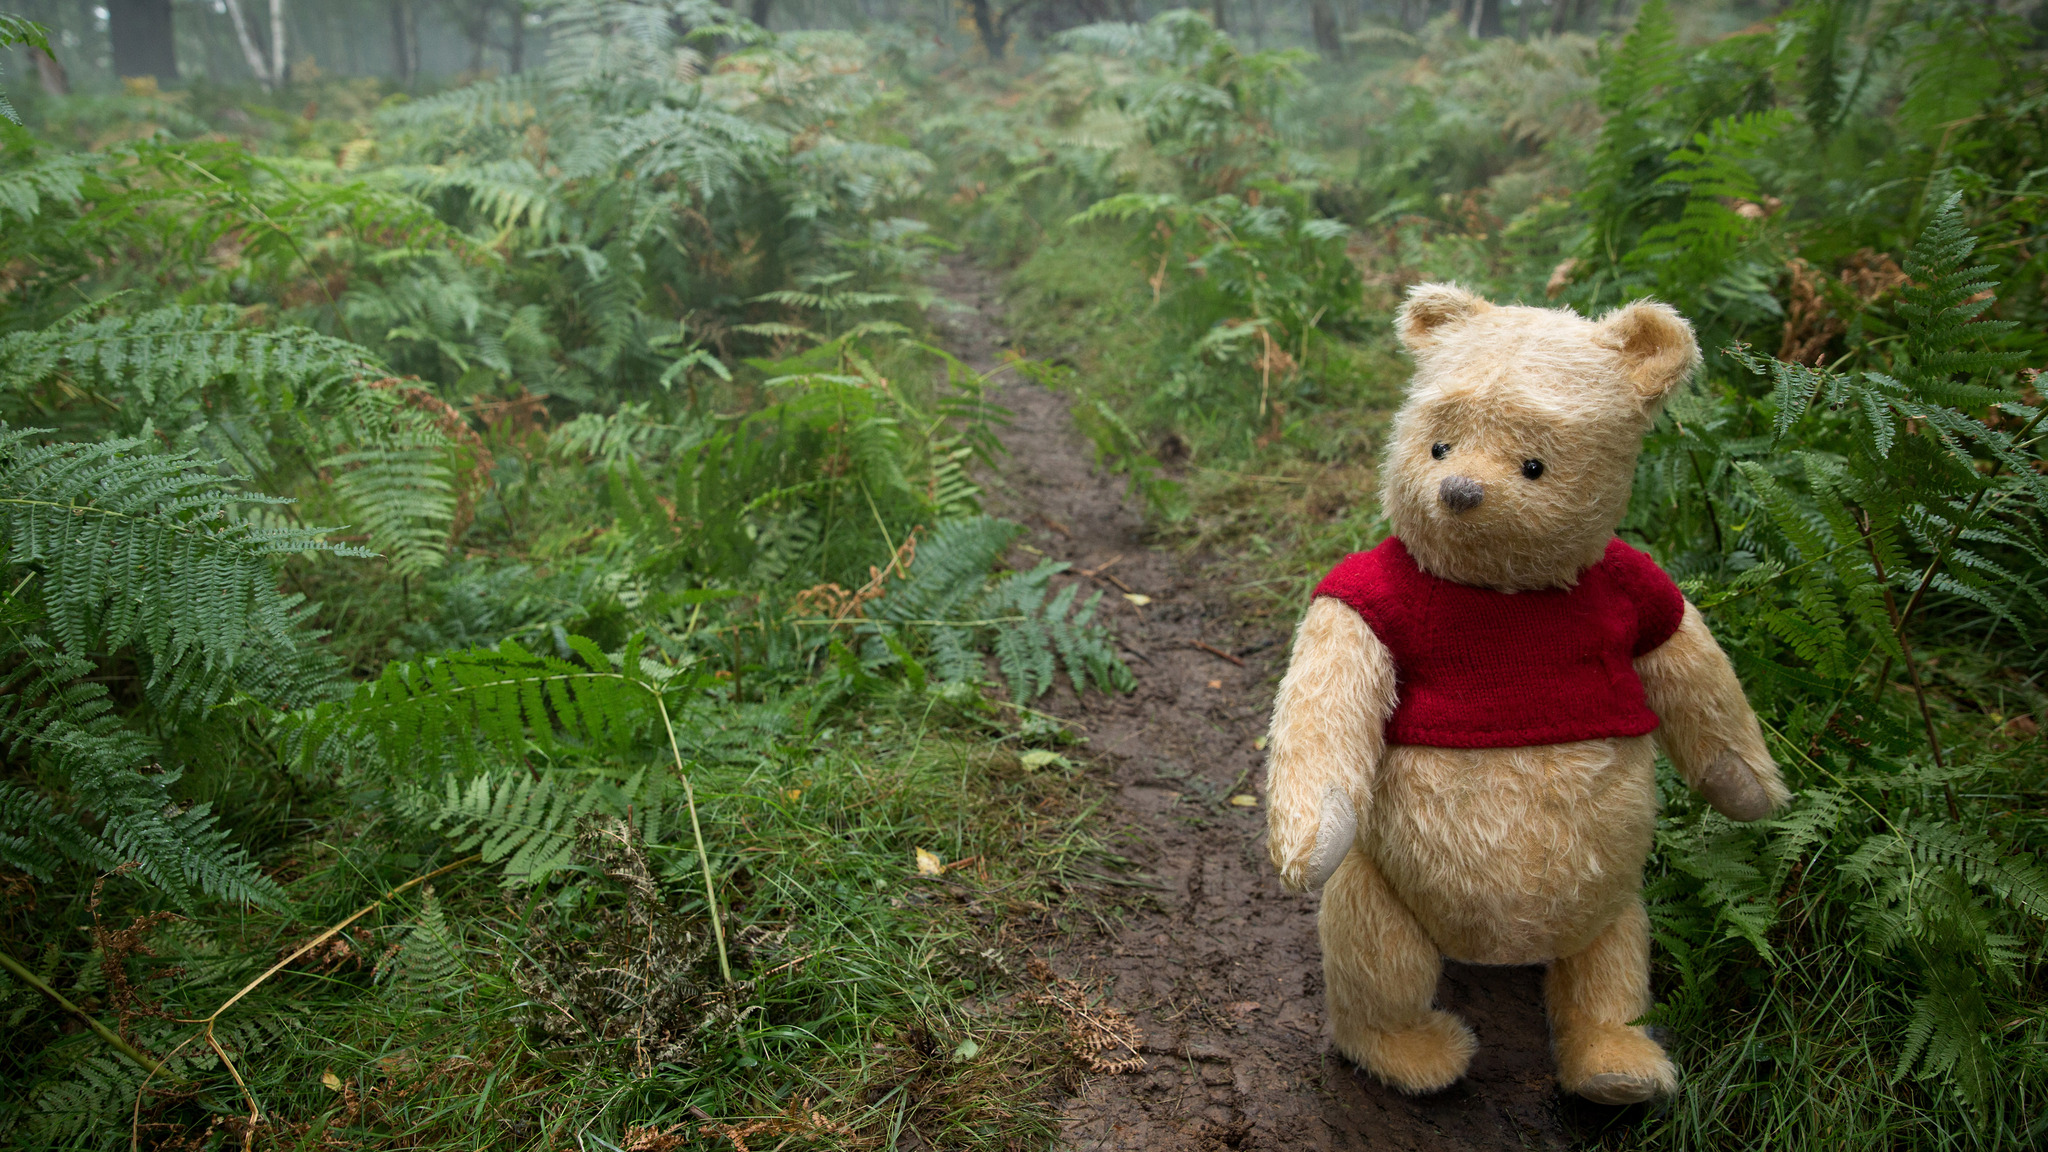 Cute Pooh Bear Wallpapers 2048x1152 Winnie The Pooh In Christopher Robin Movie 5k